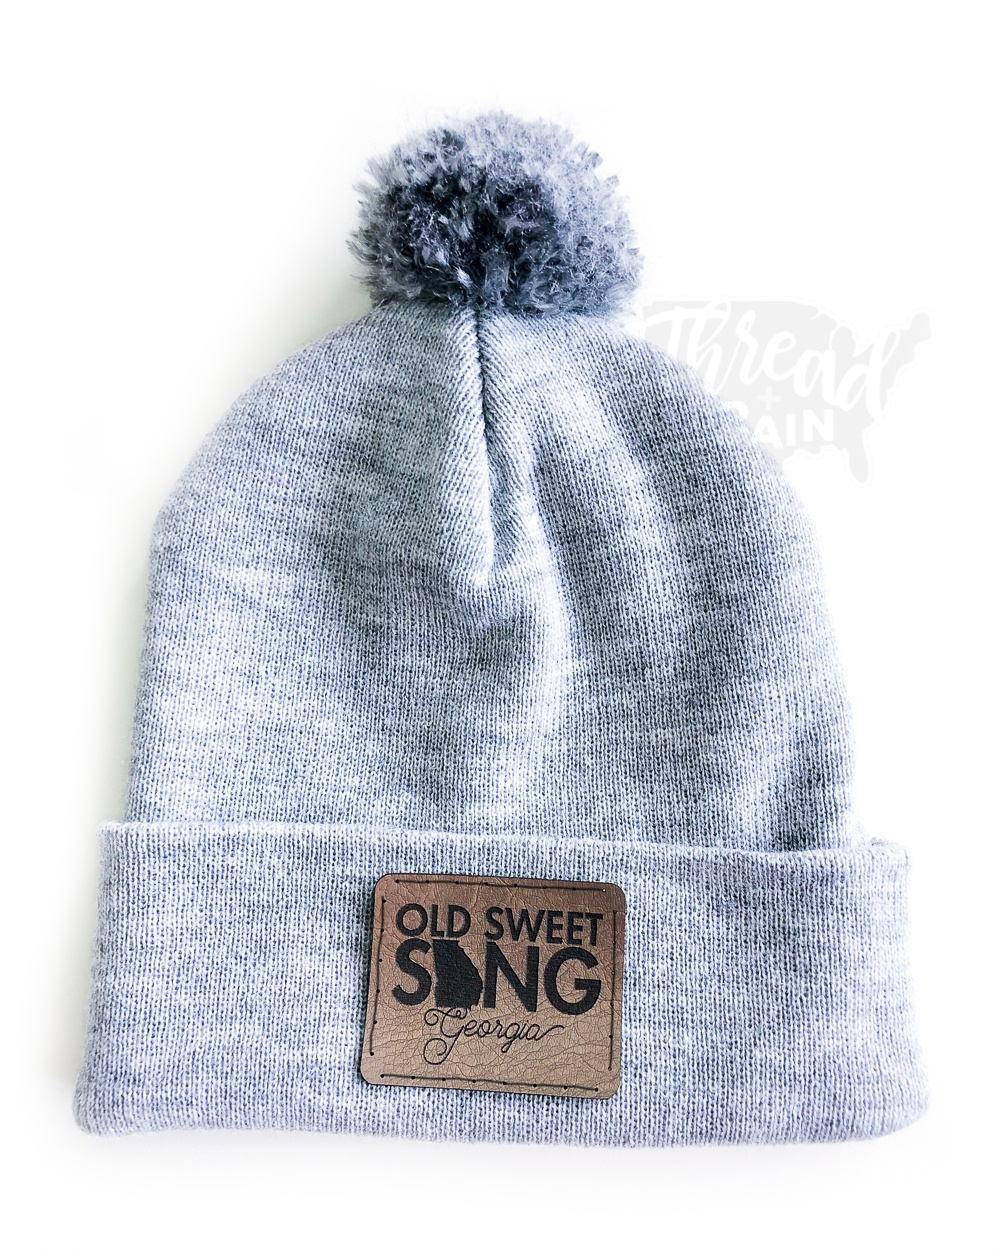 Georgia :: Old Sweet Song PATCHED HAT